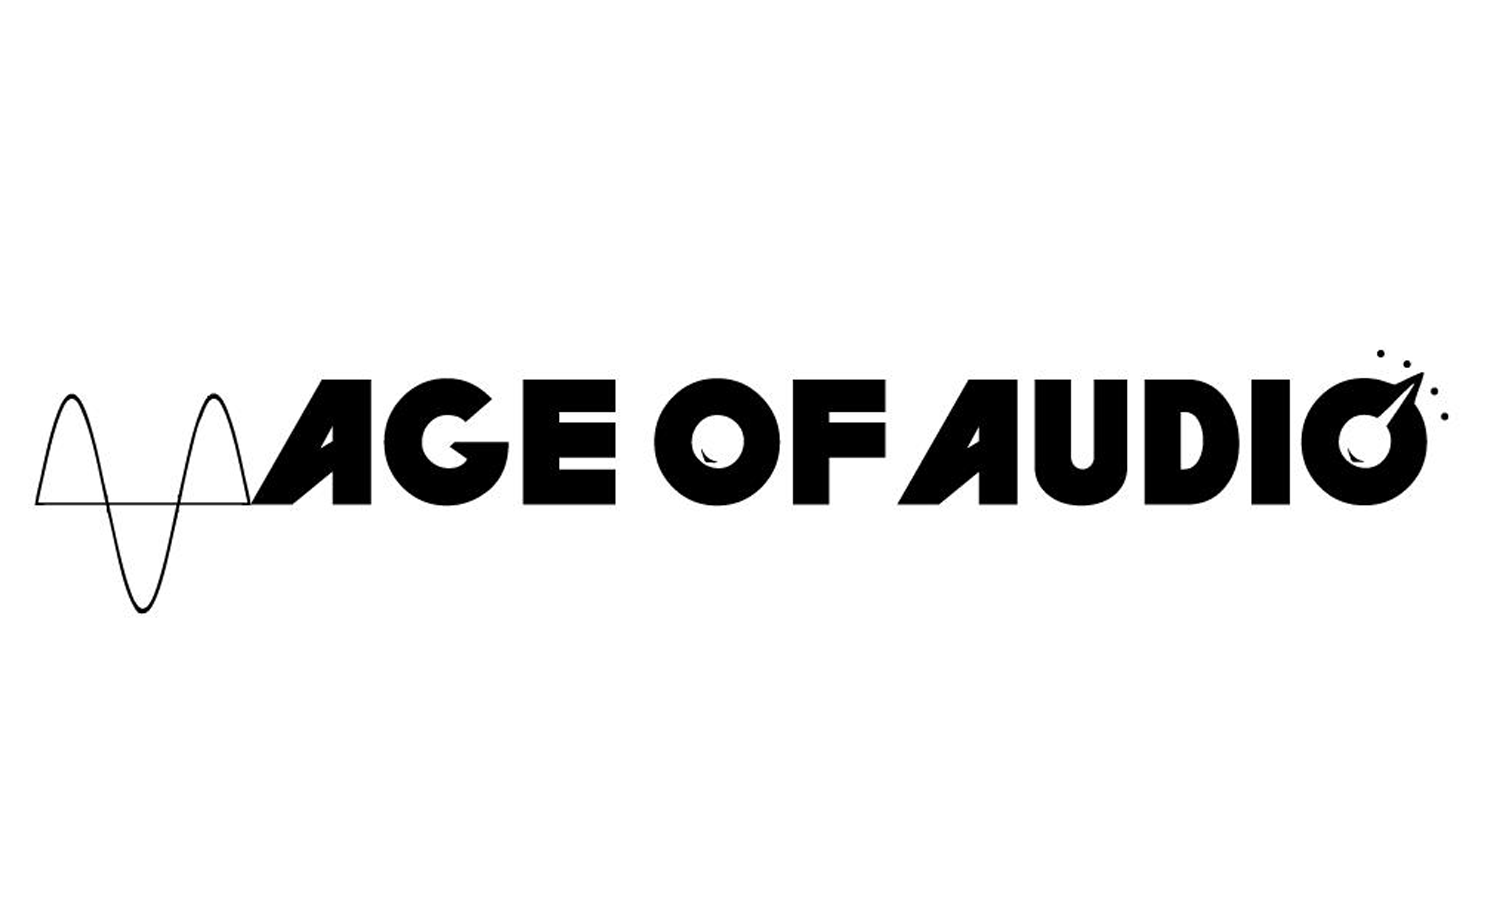 AGE OF AUDIO